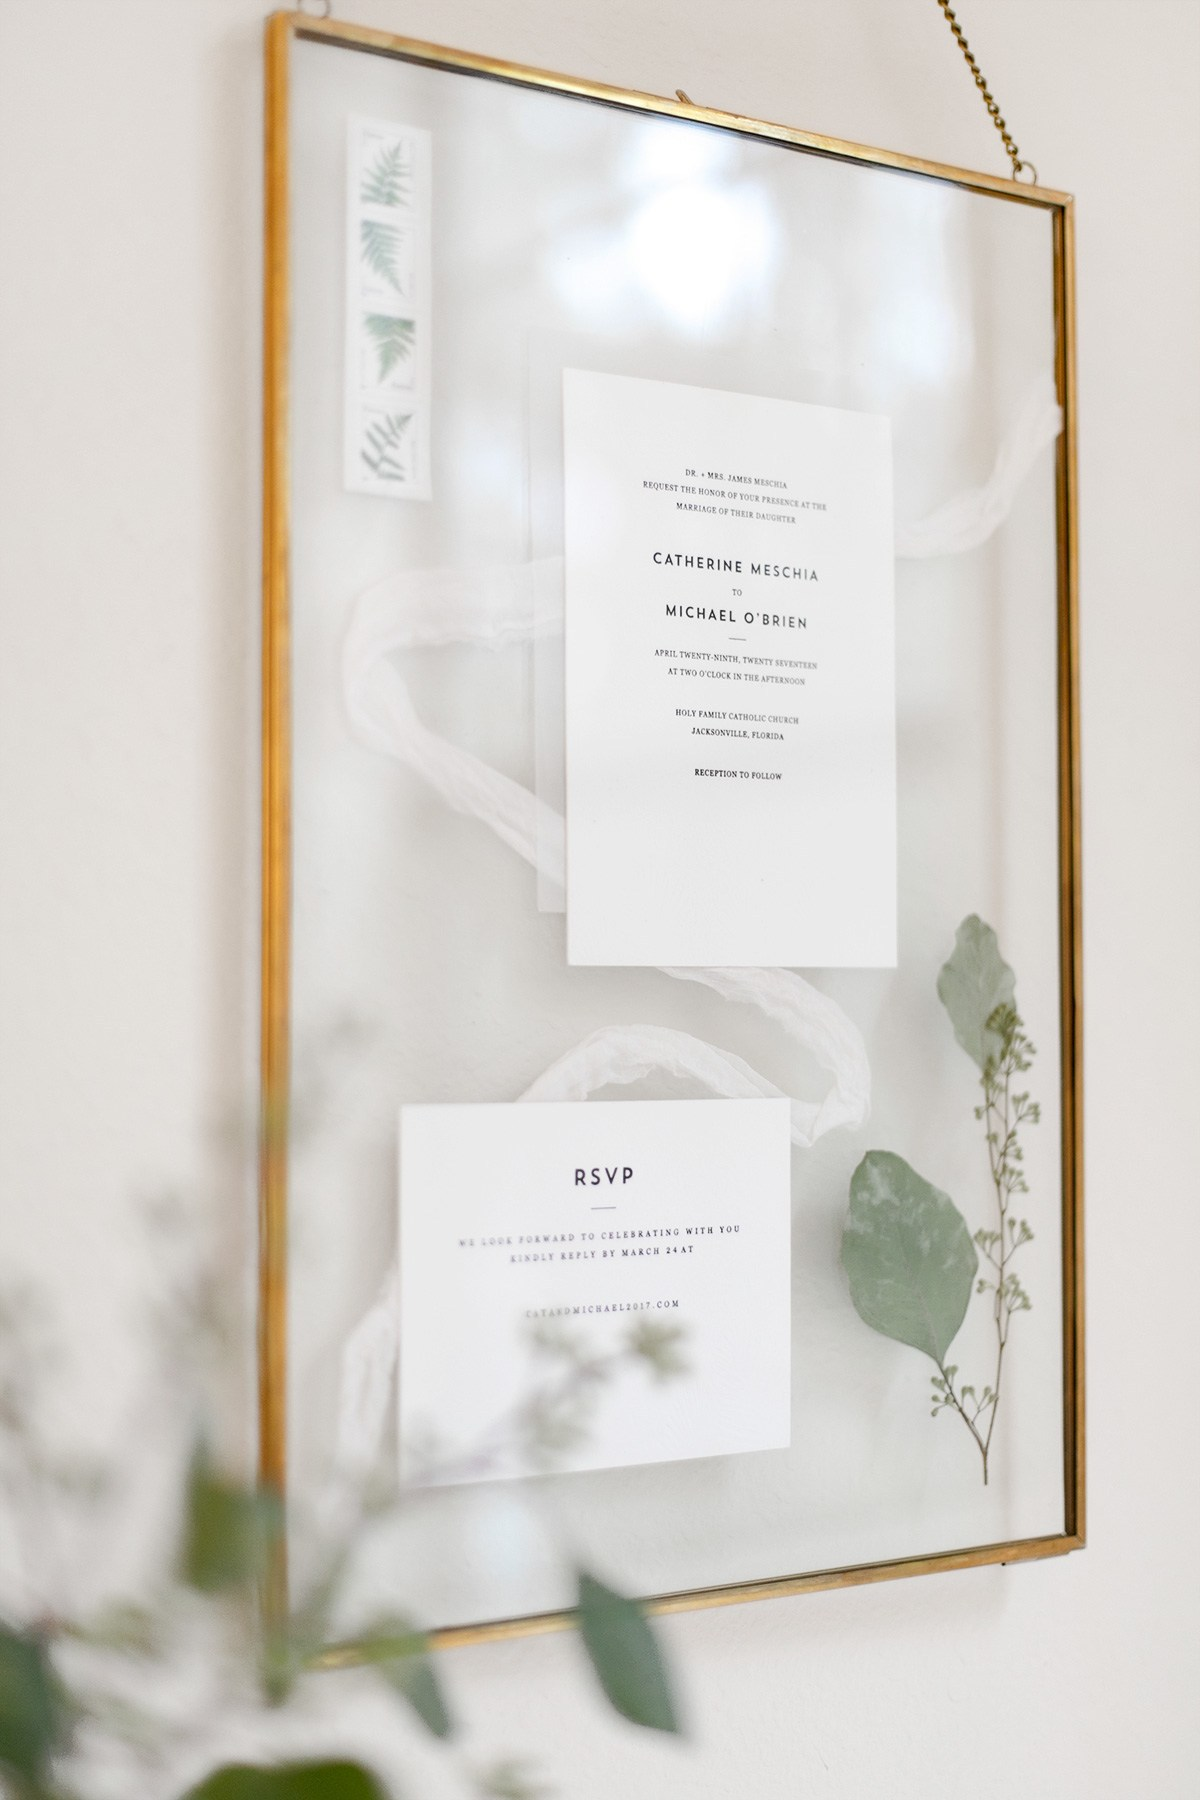 13 Beautiful Wedding Keepsakes You'll Cherish images 10